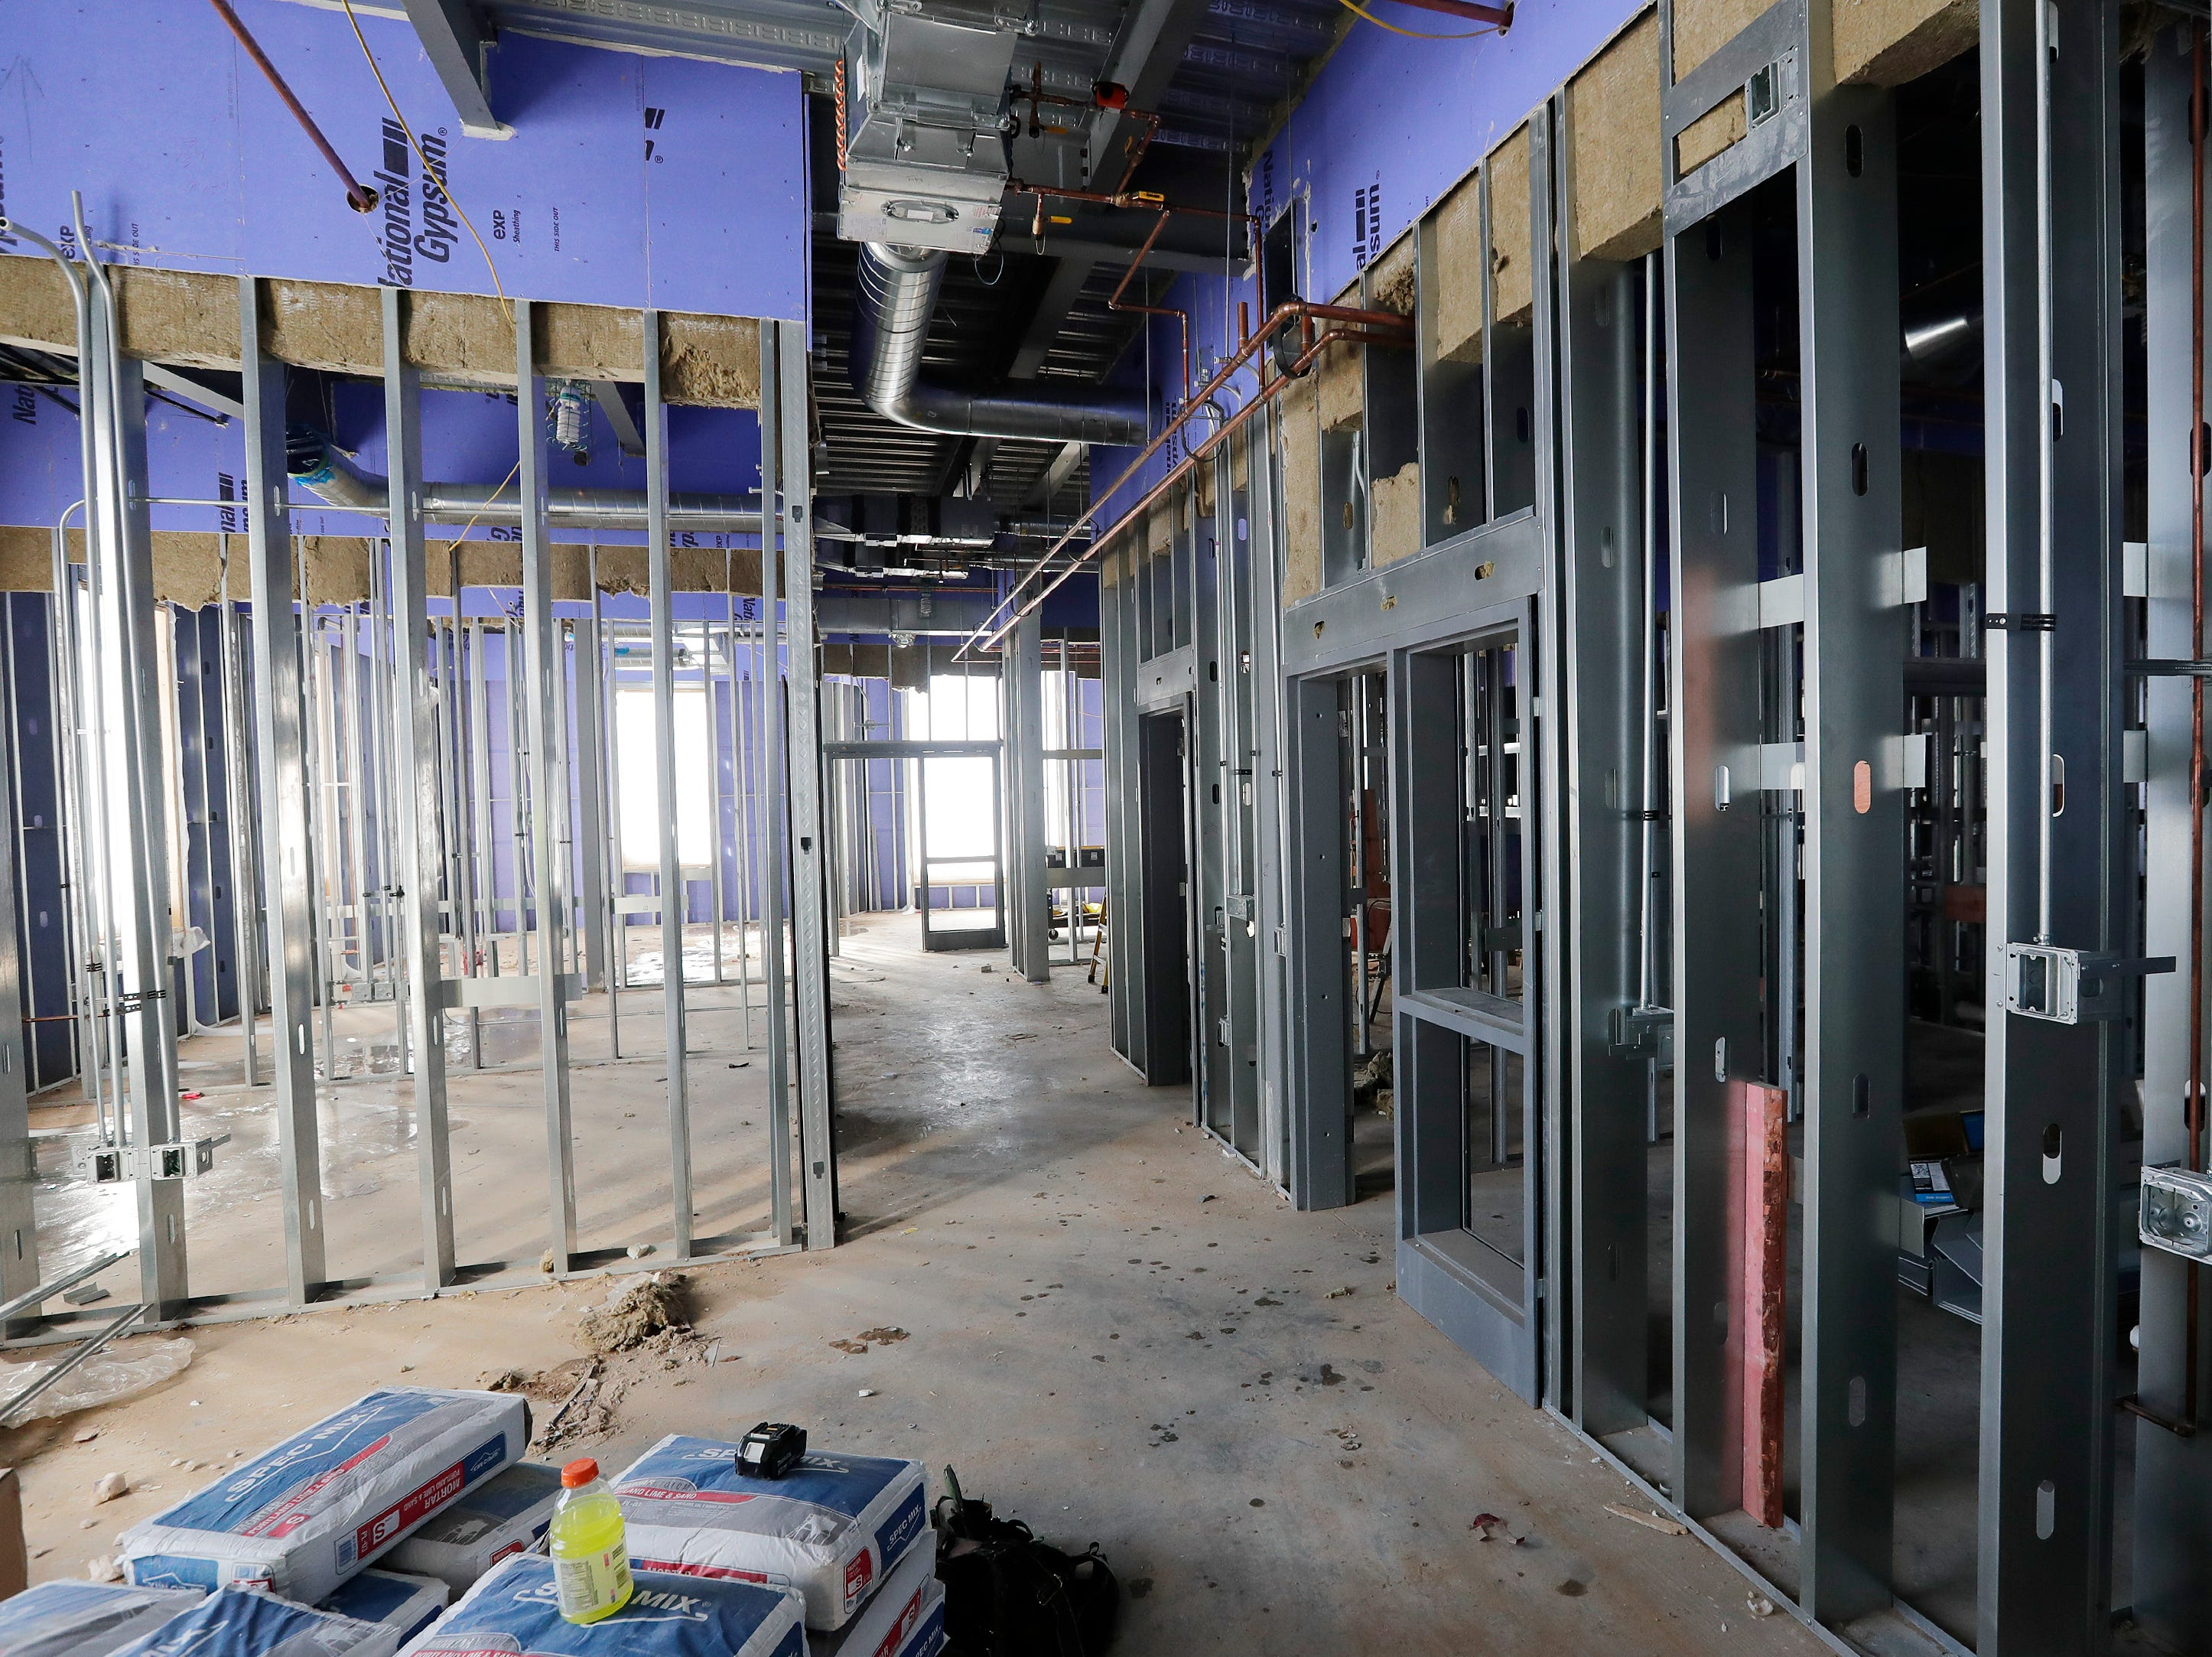 The under-construction main office area at Baird Elementary School is shown on Wednesday, February 13, 2019 in Green Bay, Wis.